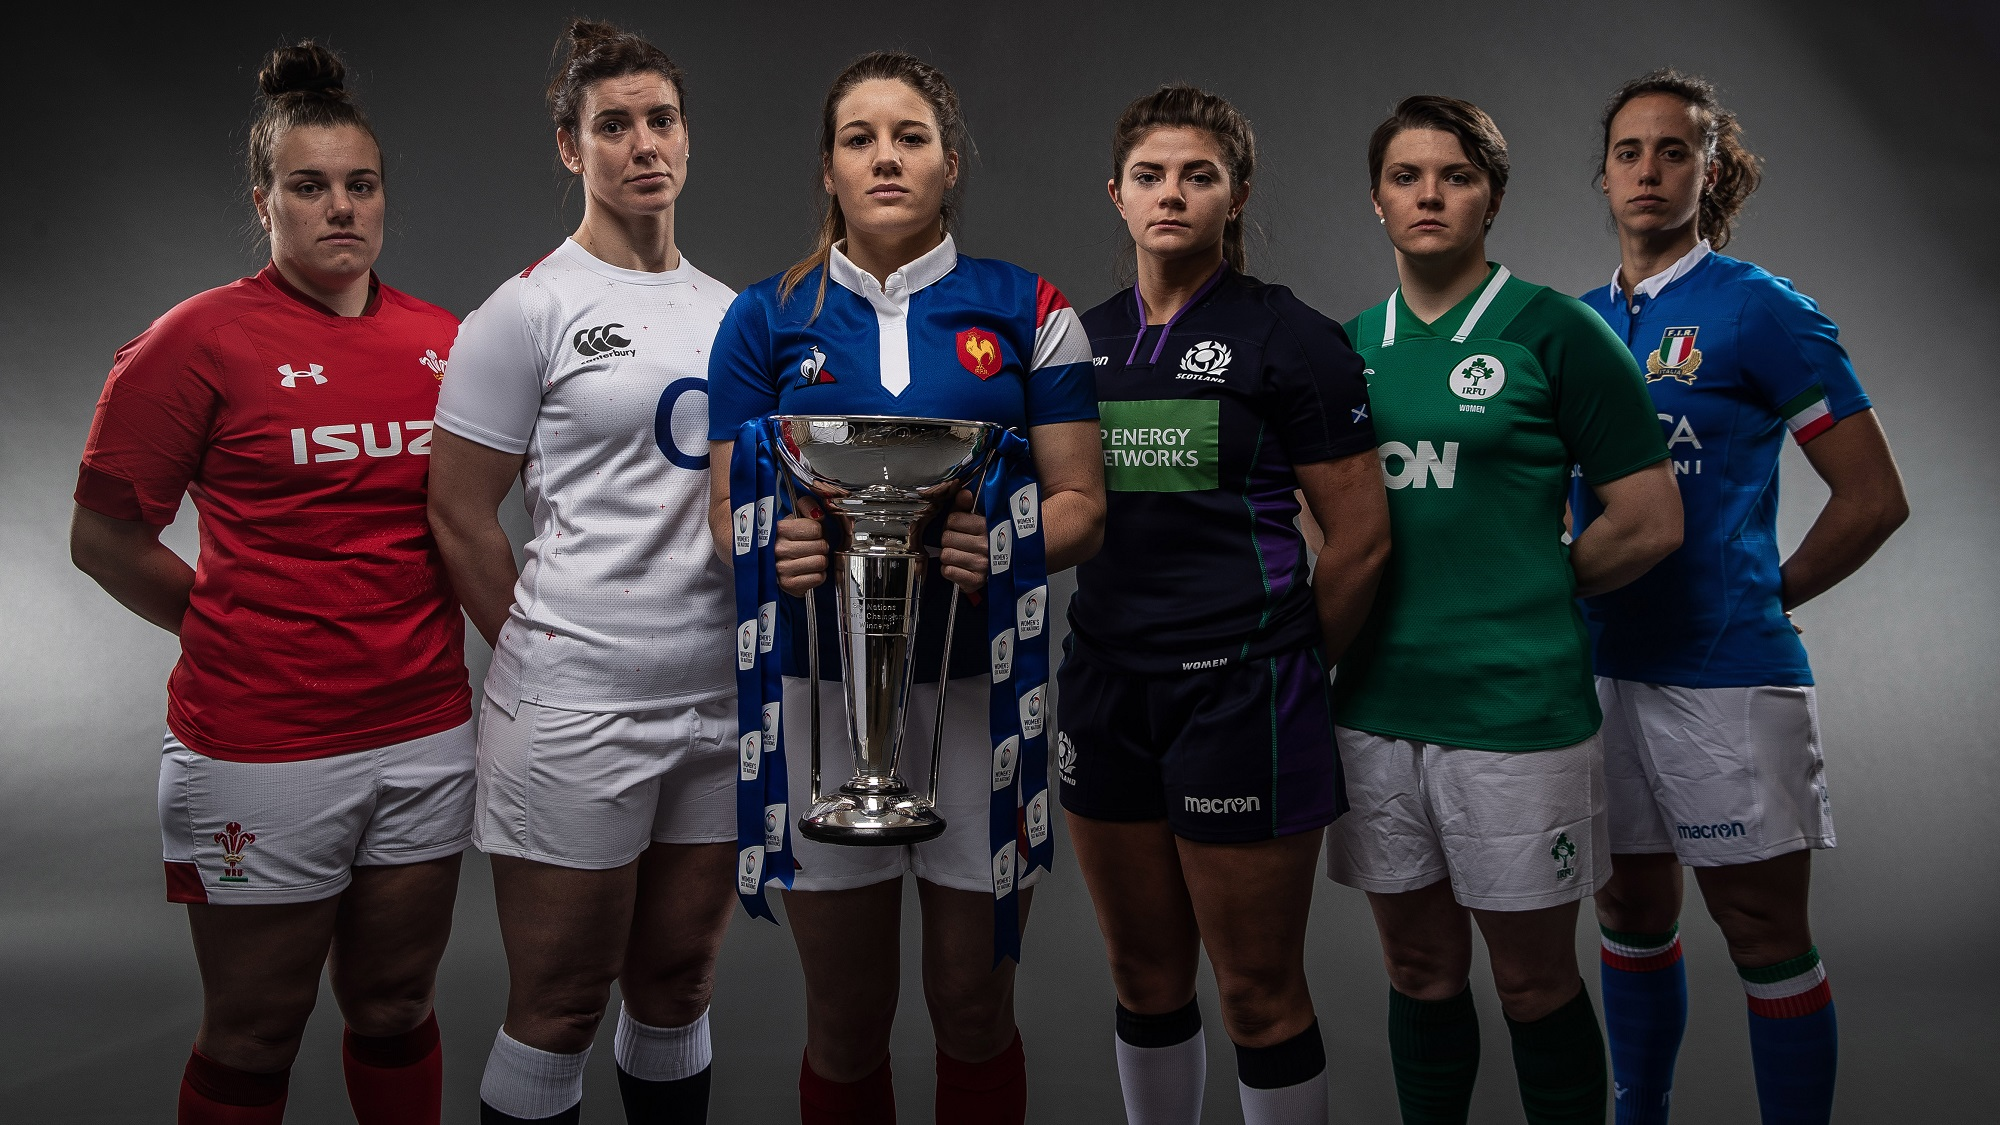 All systems go for eagerly-awaited Women's Six Nations